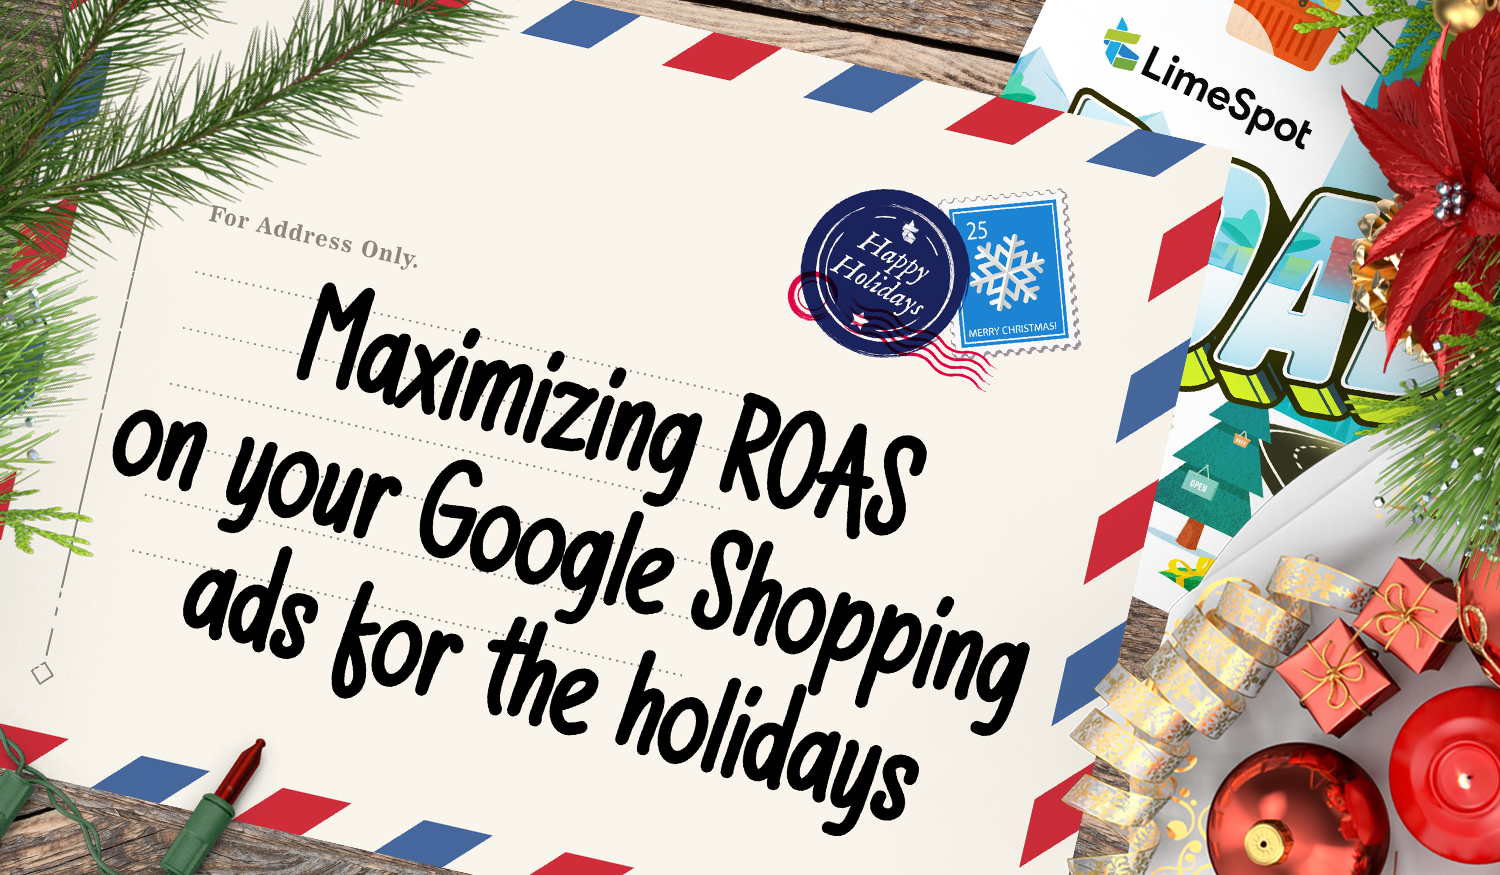 Maximizing ROAS on your Google Shopping ads for the holidays 1500x875px